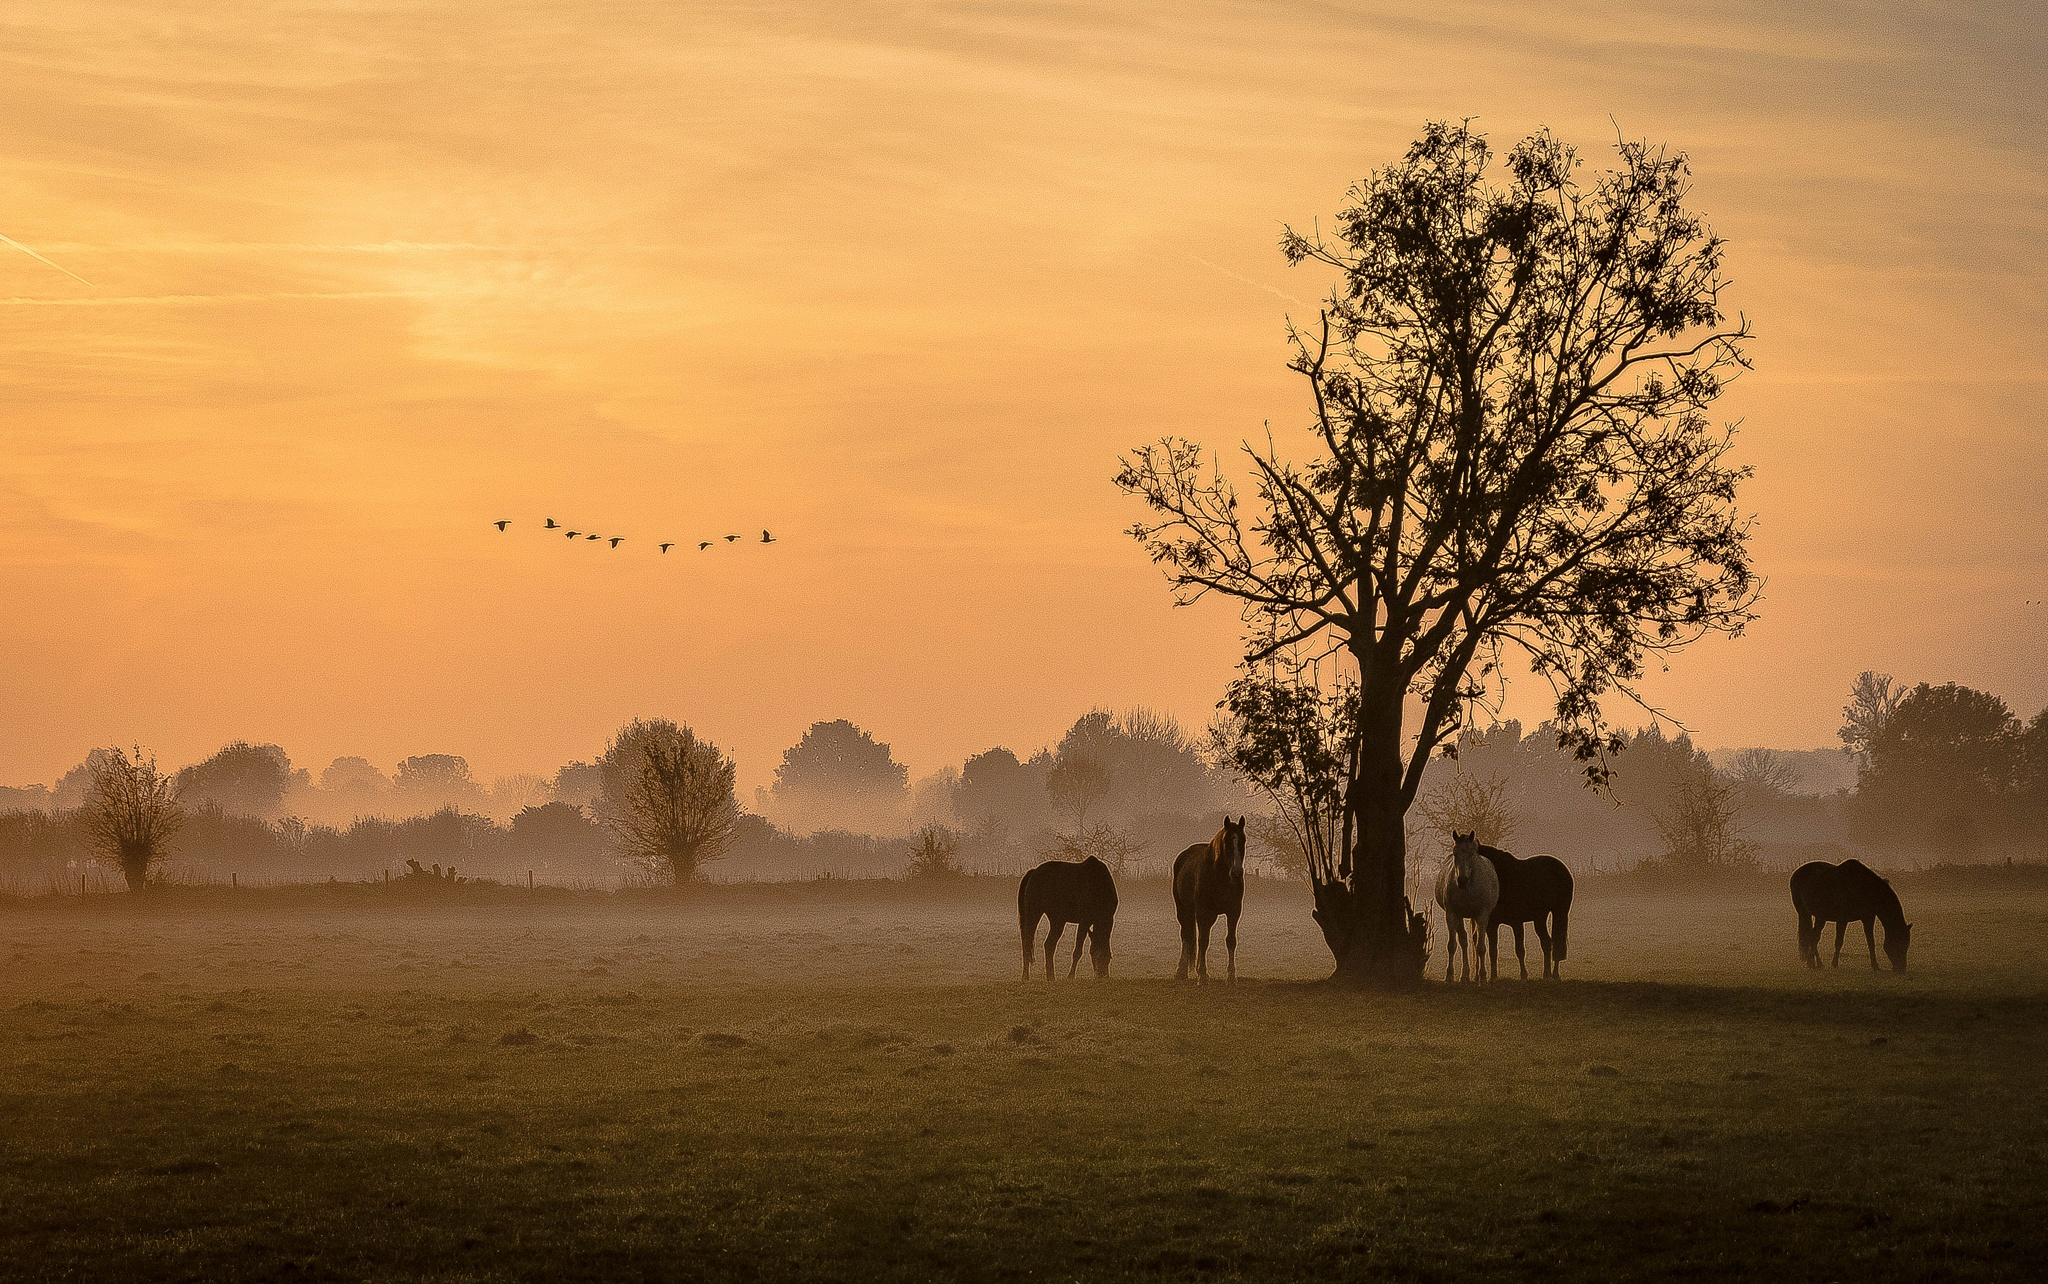 A beautiful morning with horses on pasture by Theo Hermsen